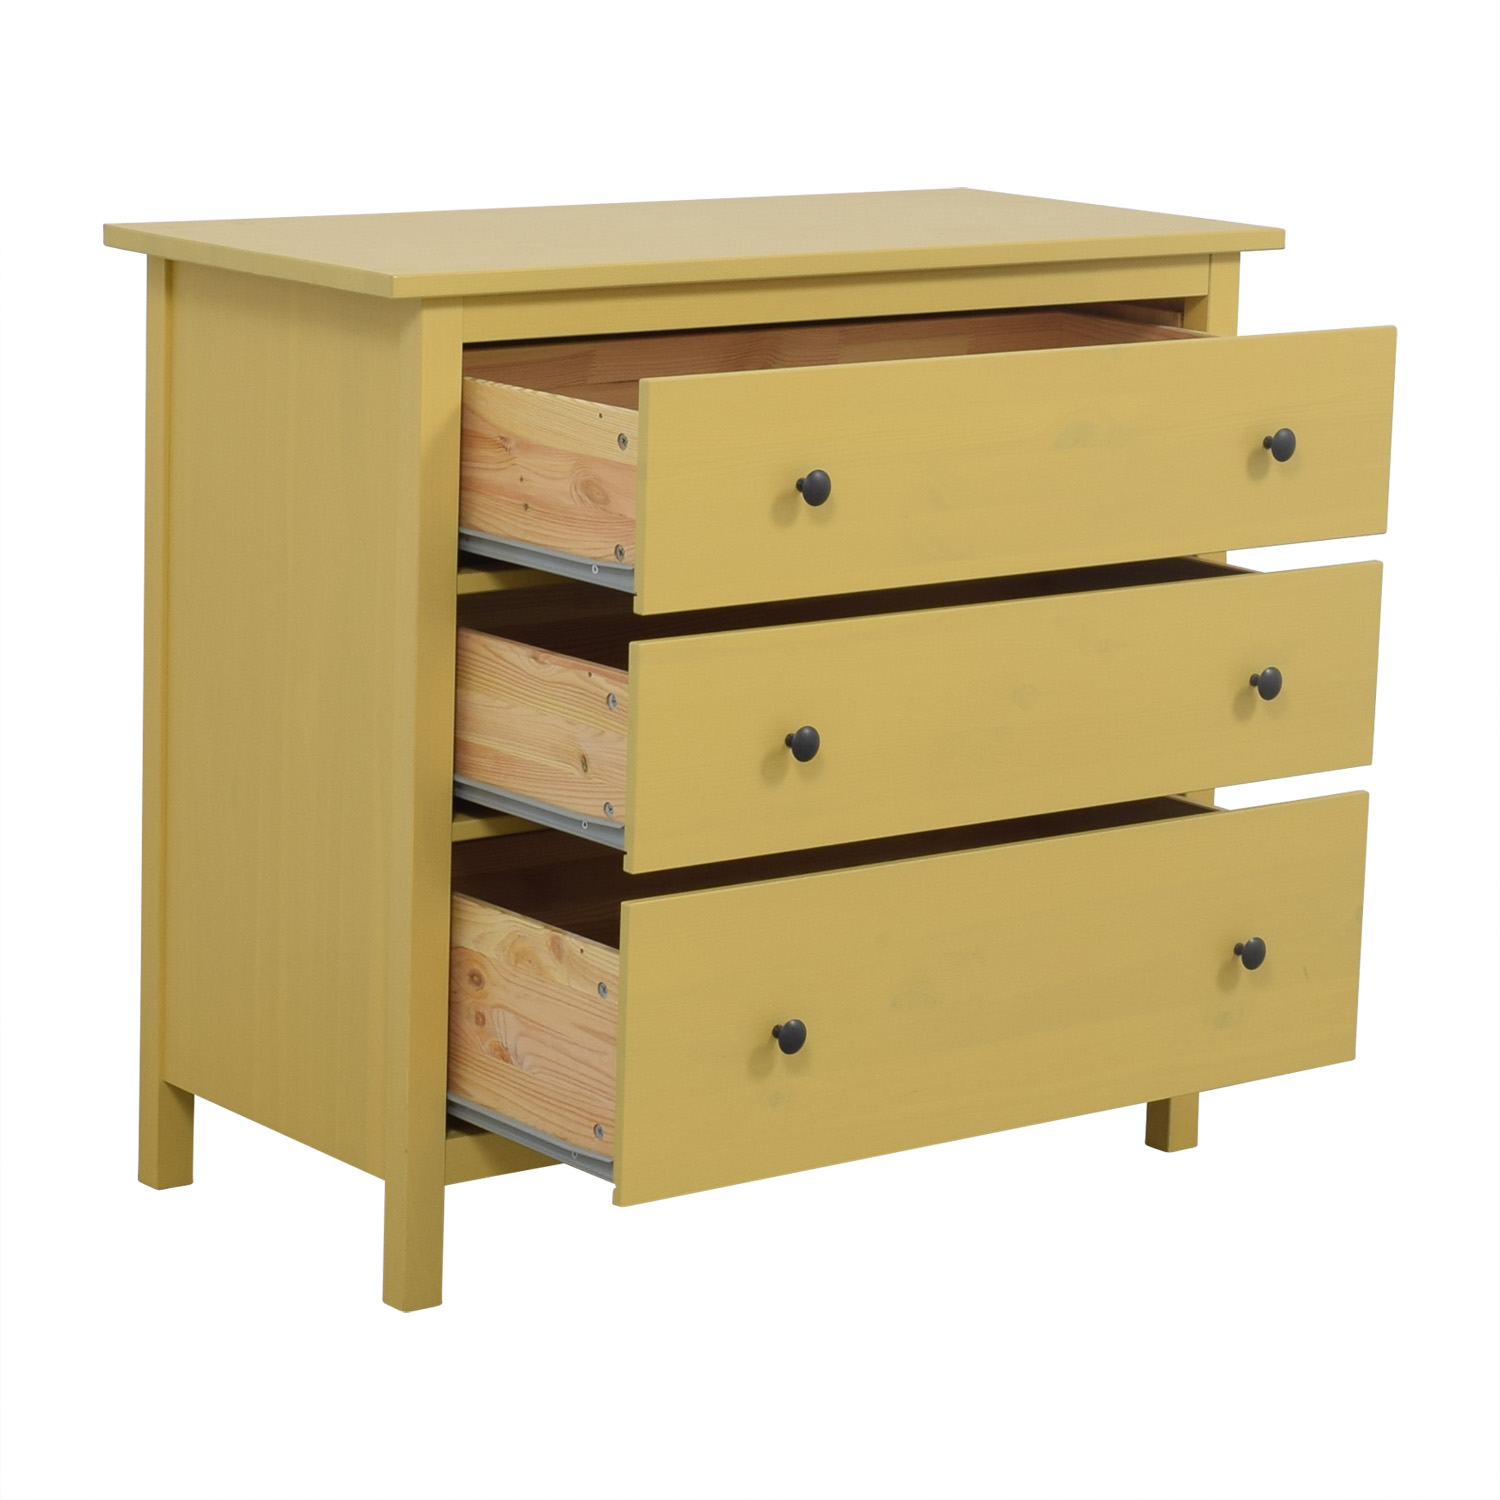 52 off ikea ikea hemnes yellow dresser storage. Black Bedroom Furniture Sets. Home Design Ideas